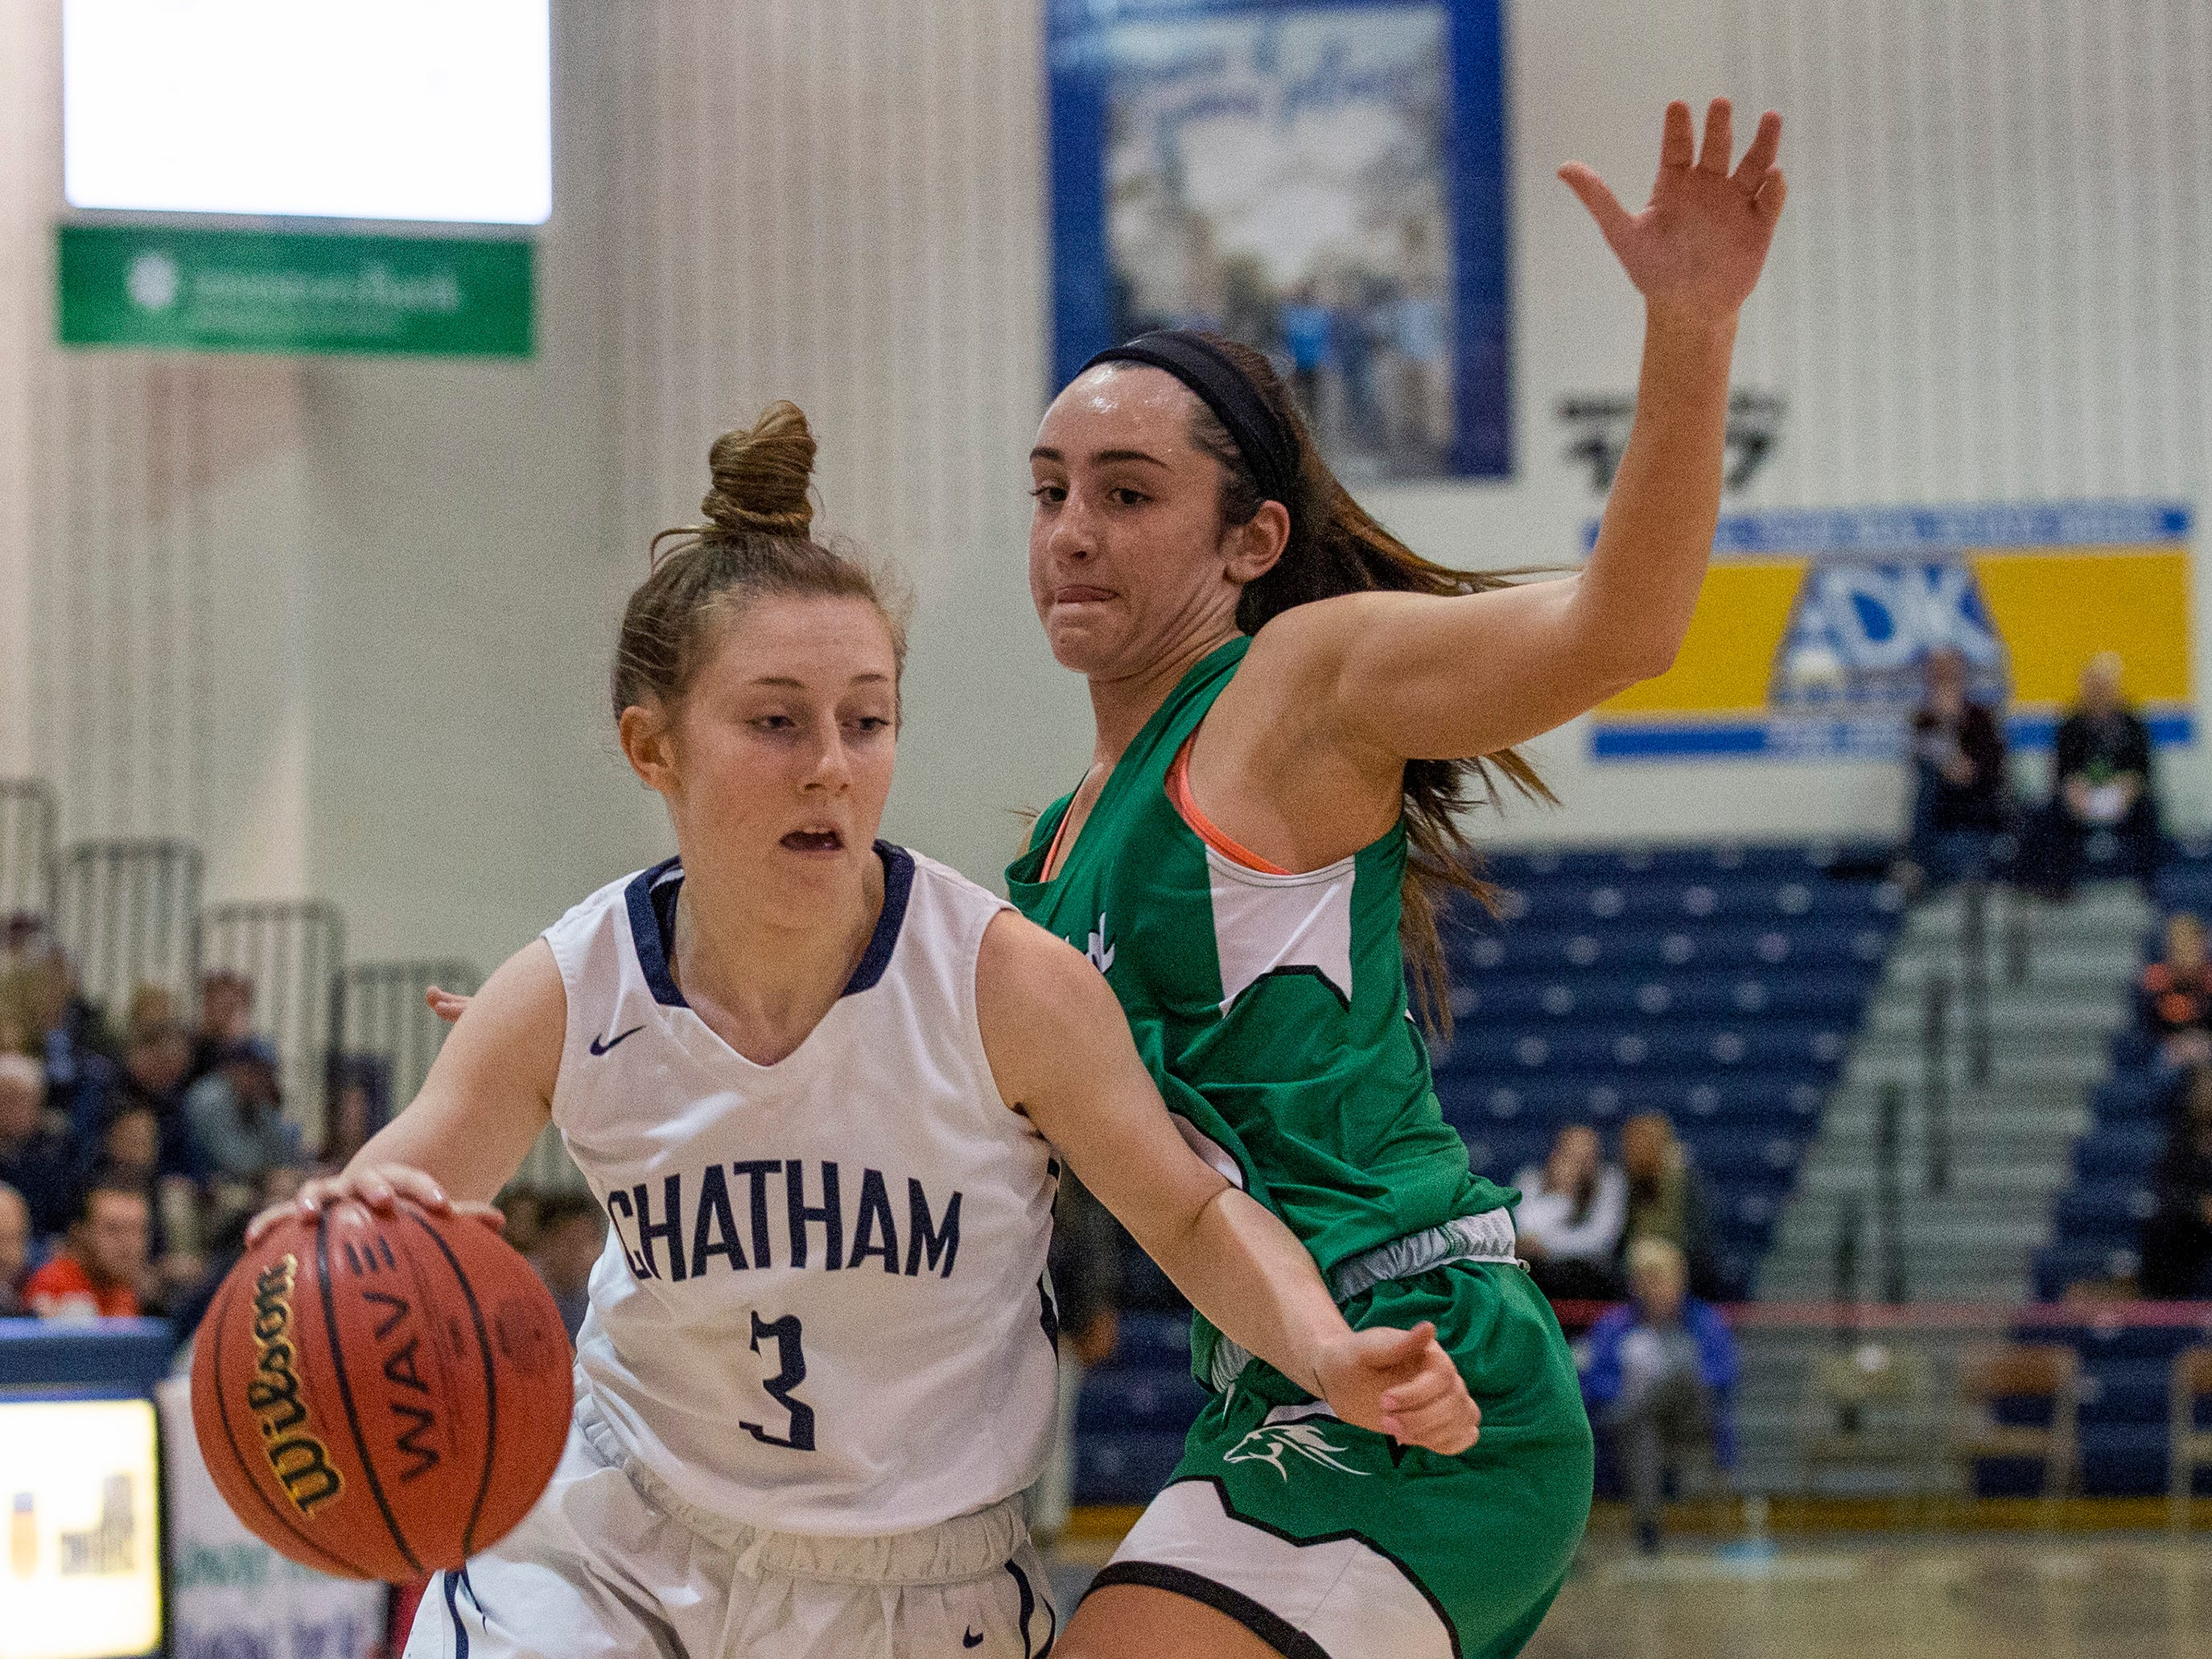 Chatham point guard Michaela Ford drives to the basket during the Group III girls basketball final against Mainland in Toms River on March 10, 2019.